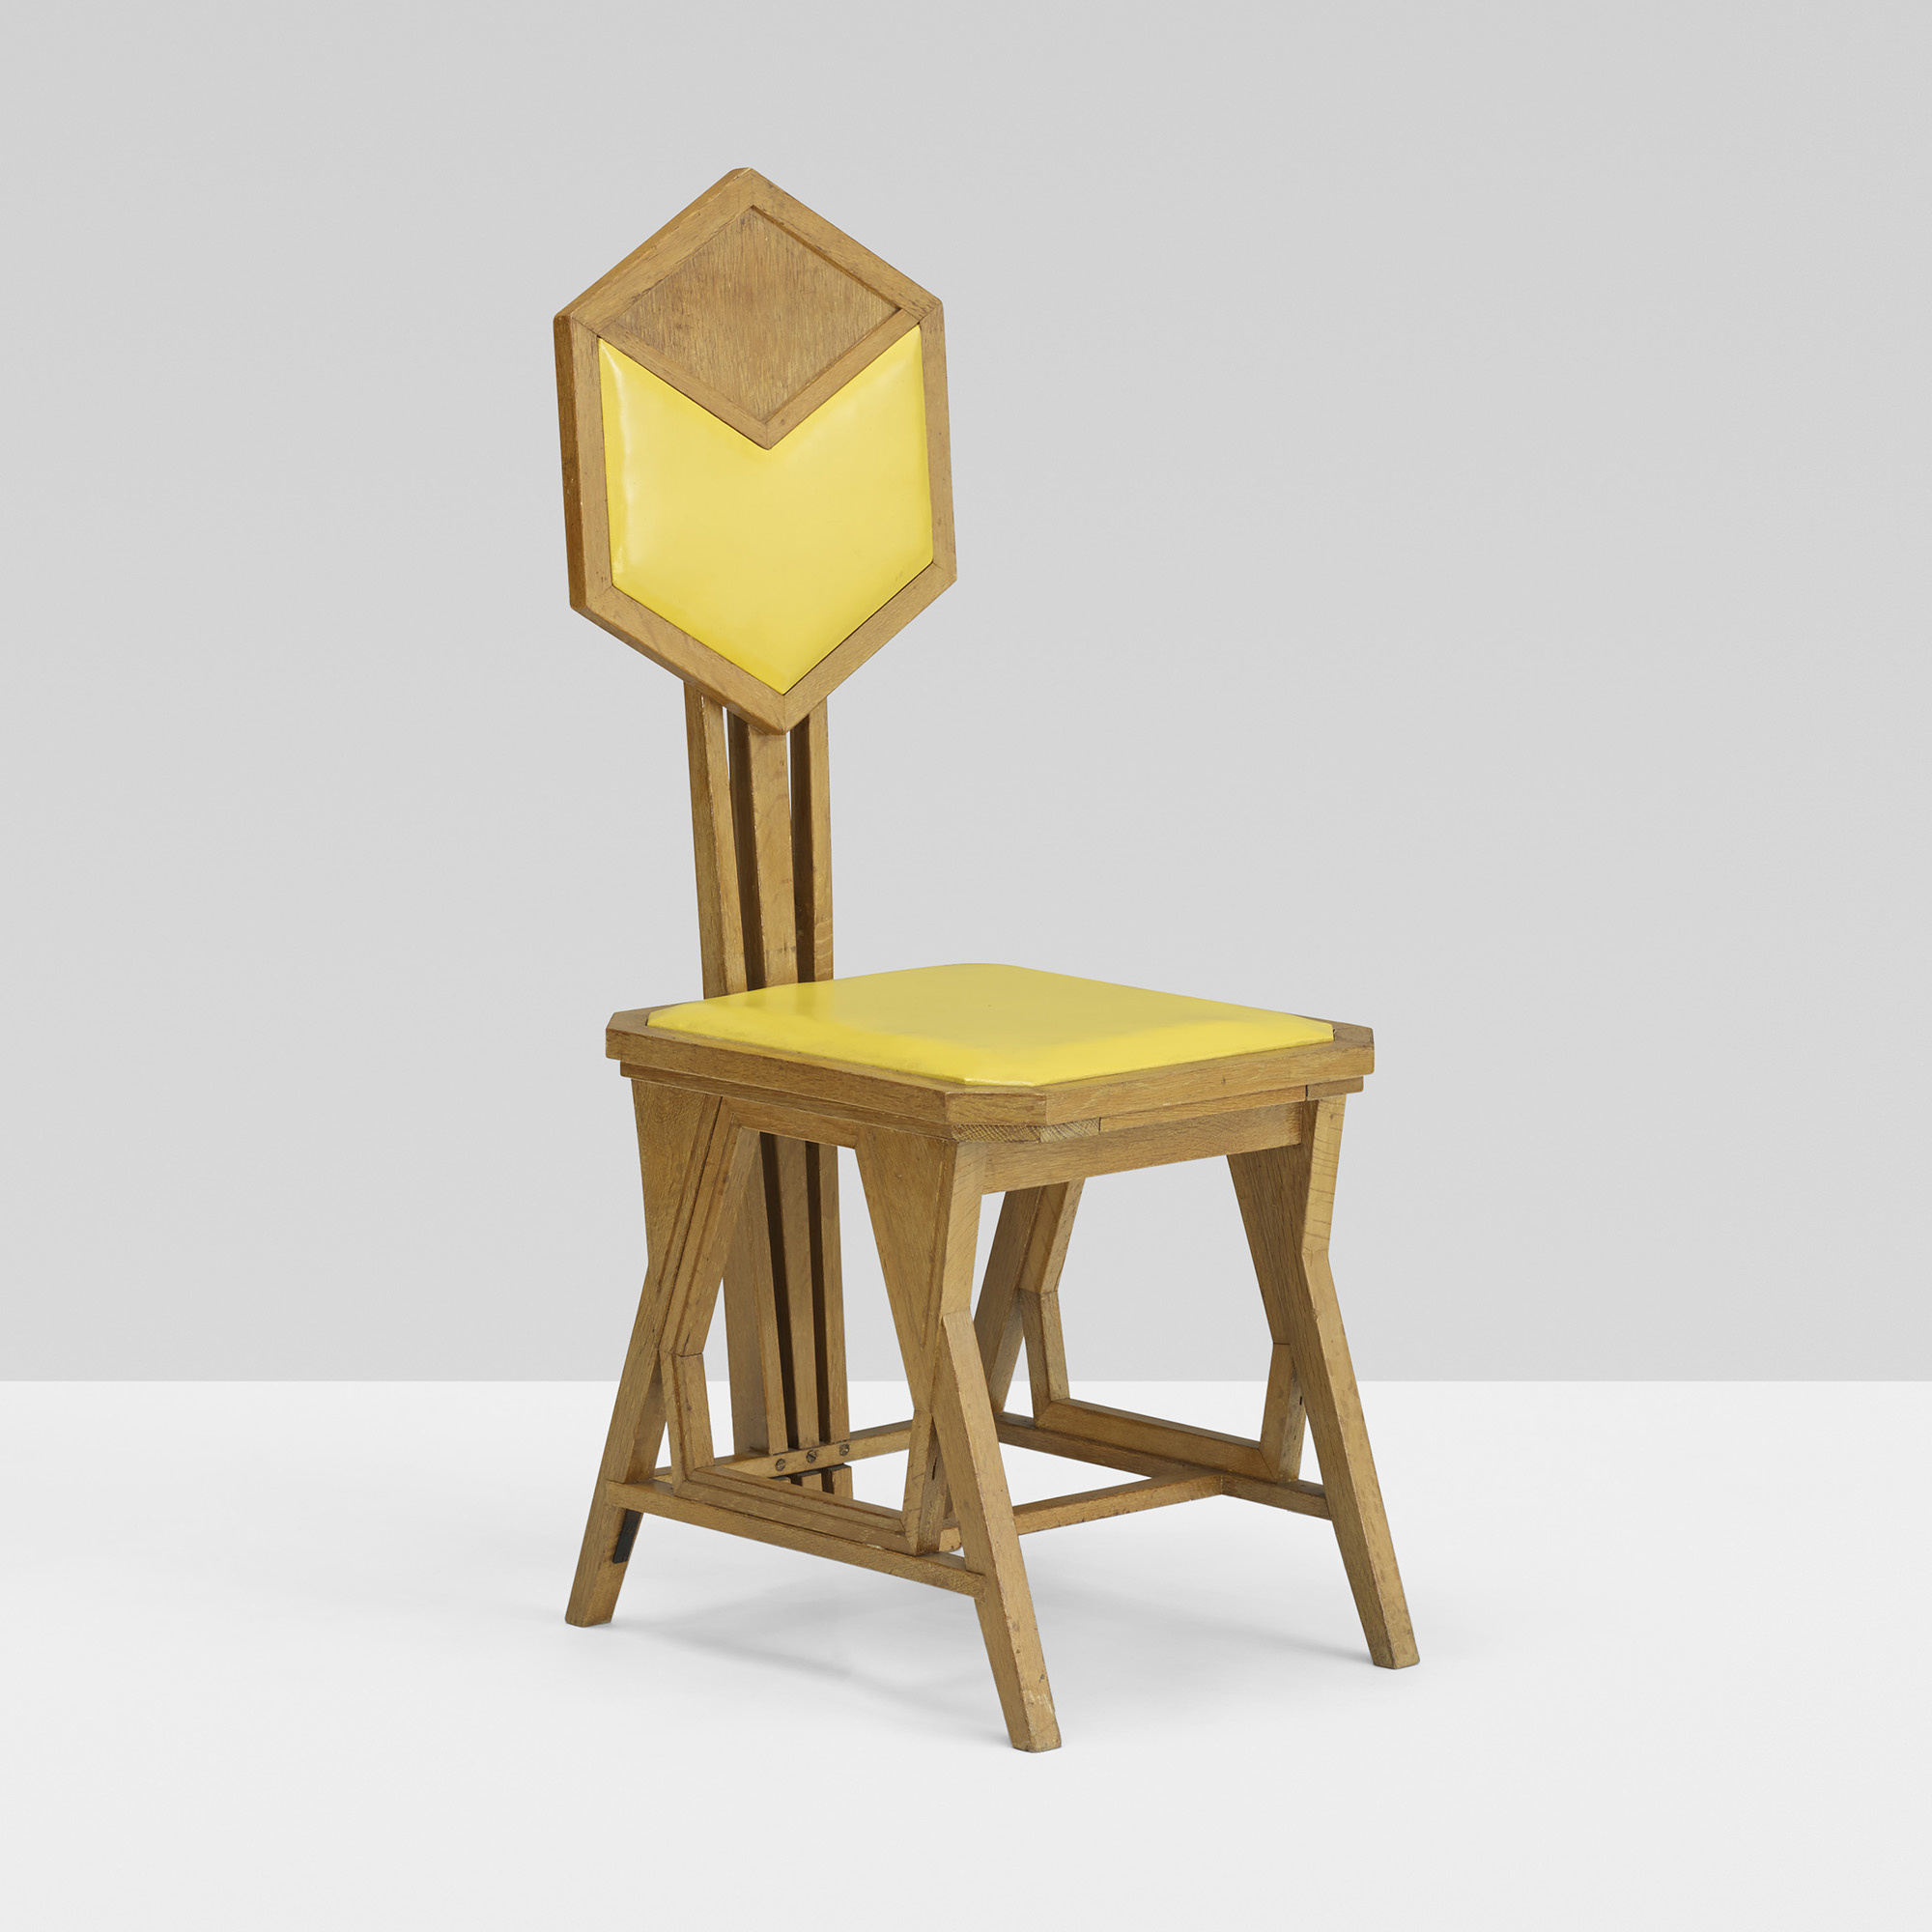 Beau 148: Frank Lloyd Wright / Chair From The Imperial Hotel, Tokyo (1 Of